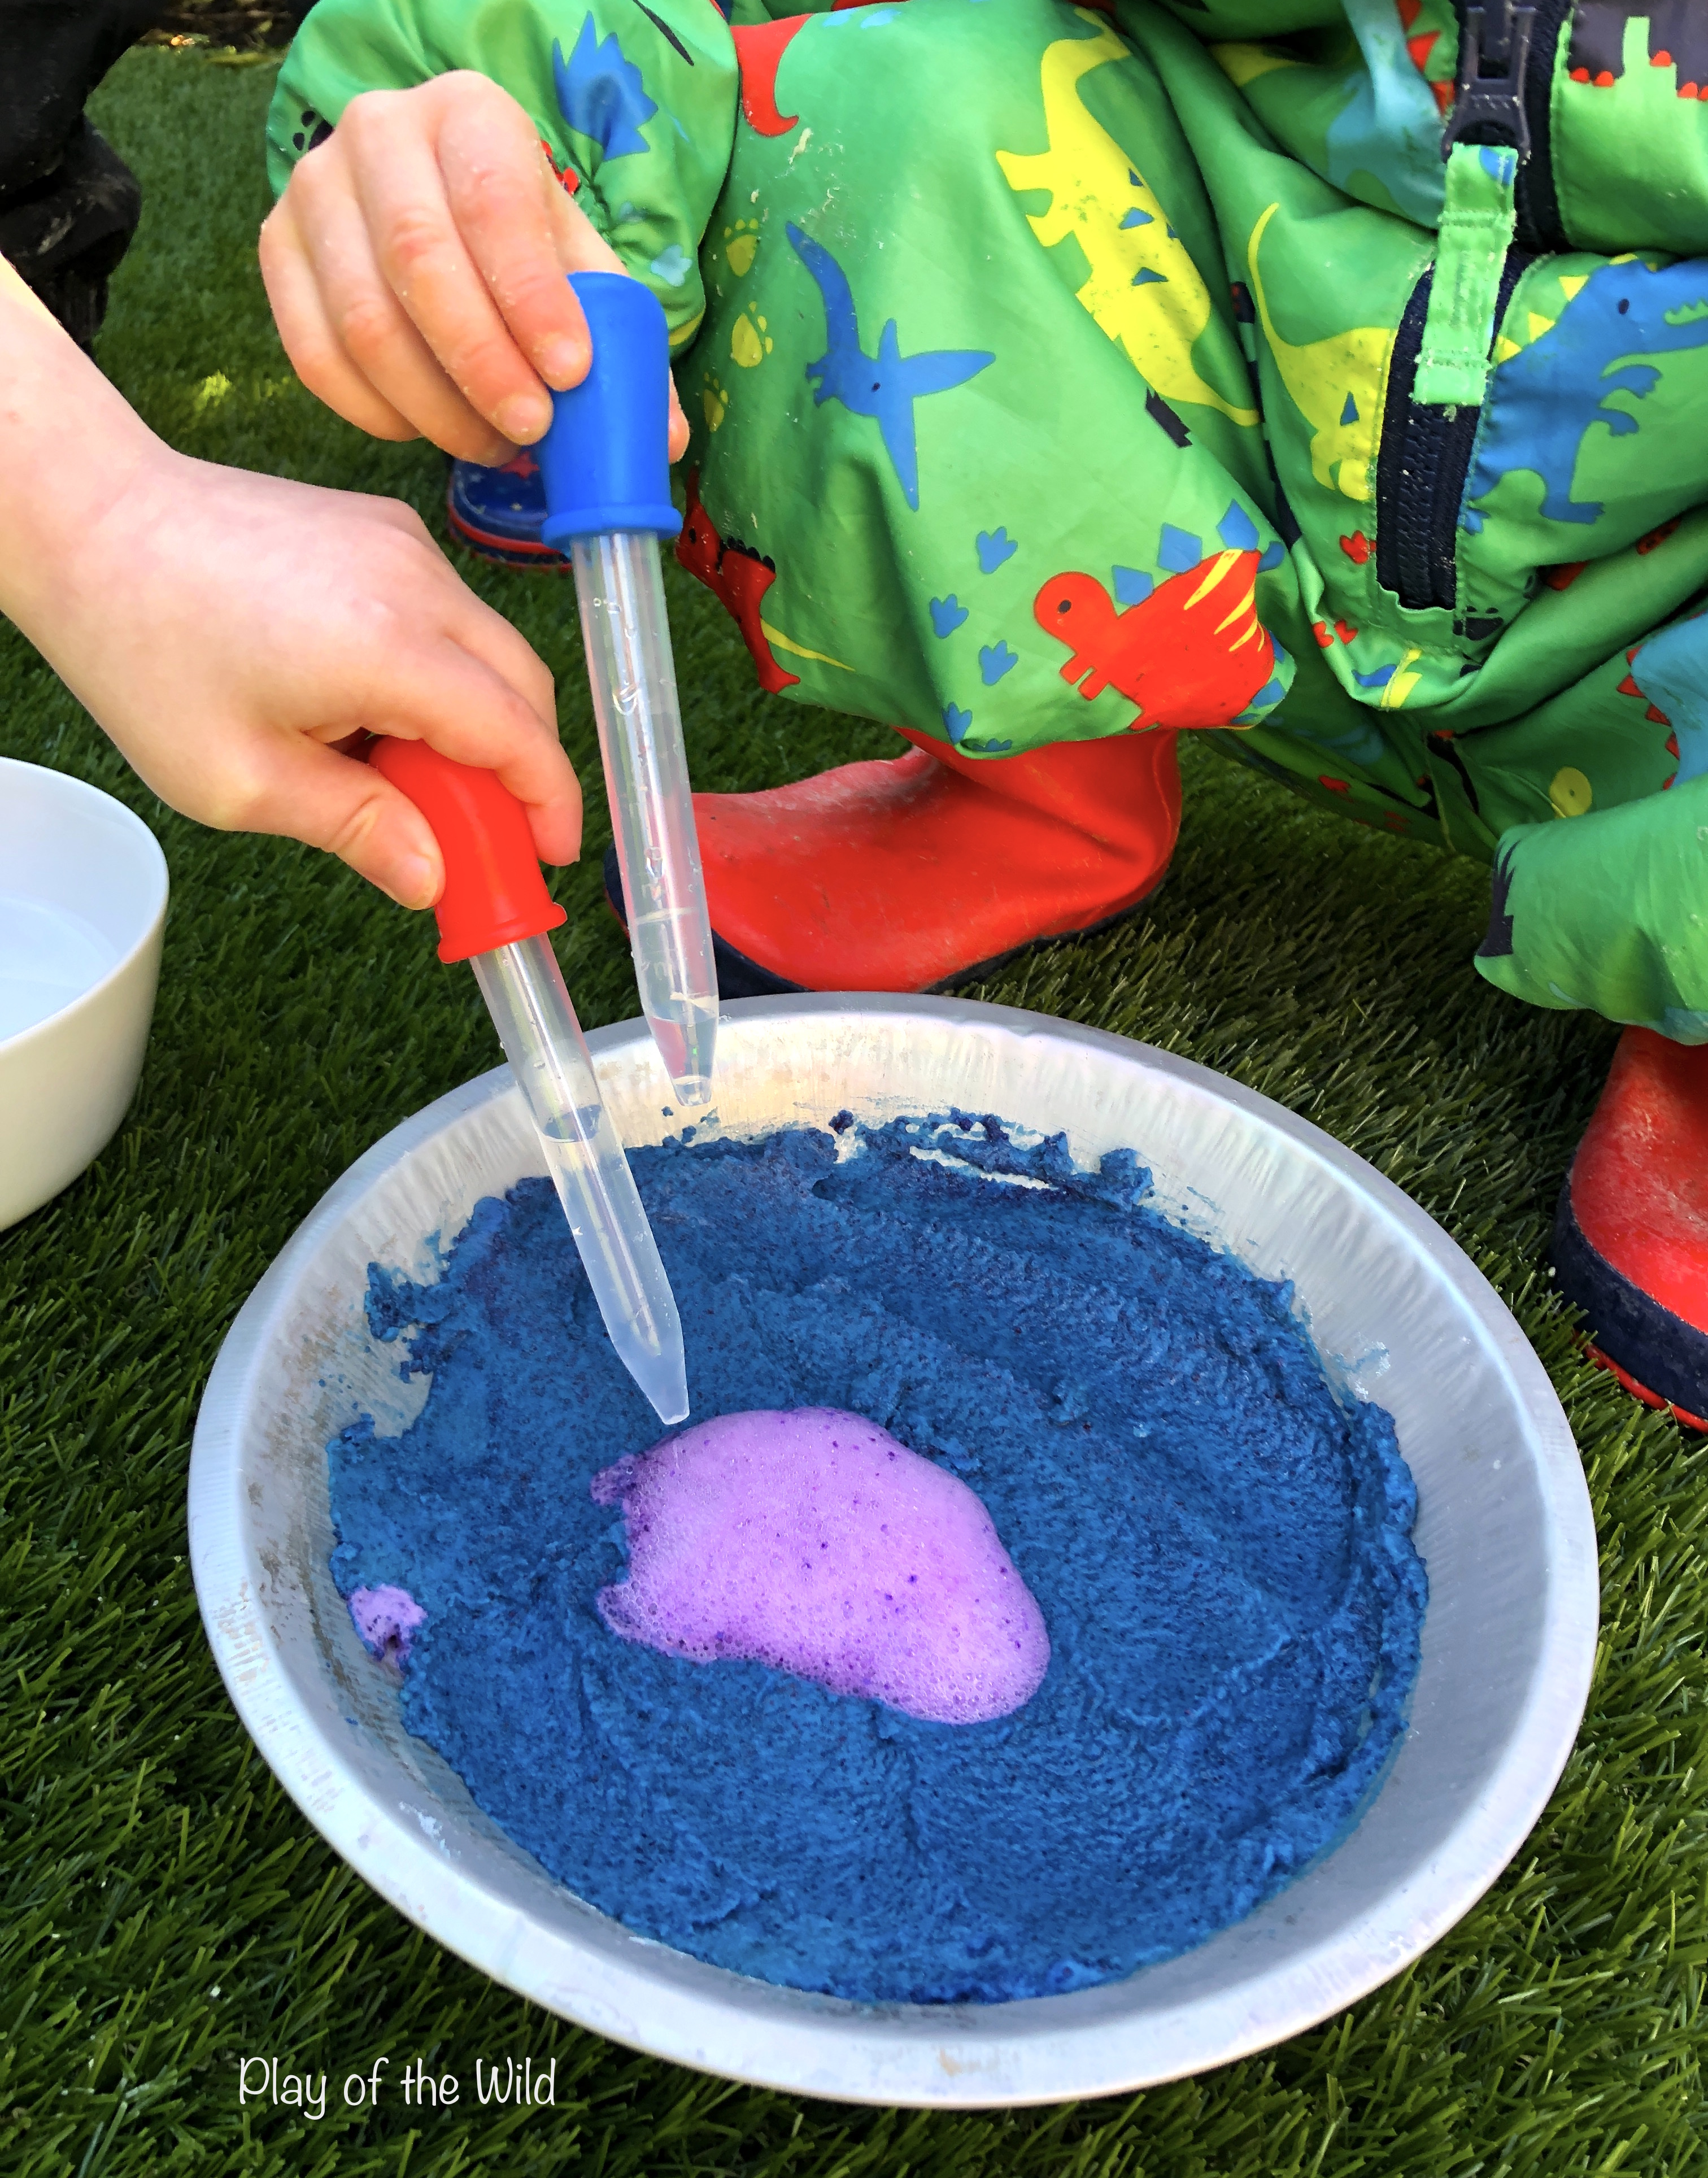 baking soda and vinegar science experiment. colourful ph experiment for kidst